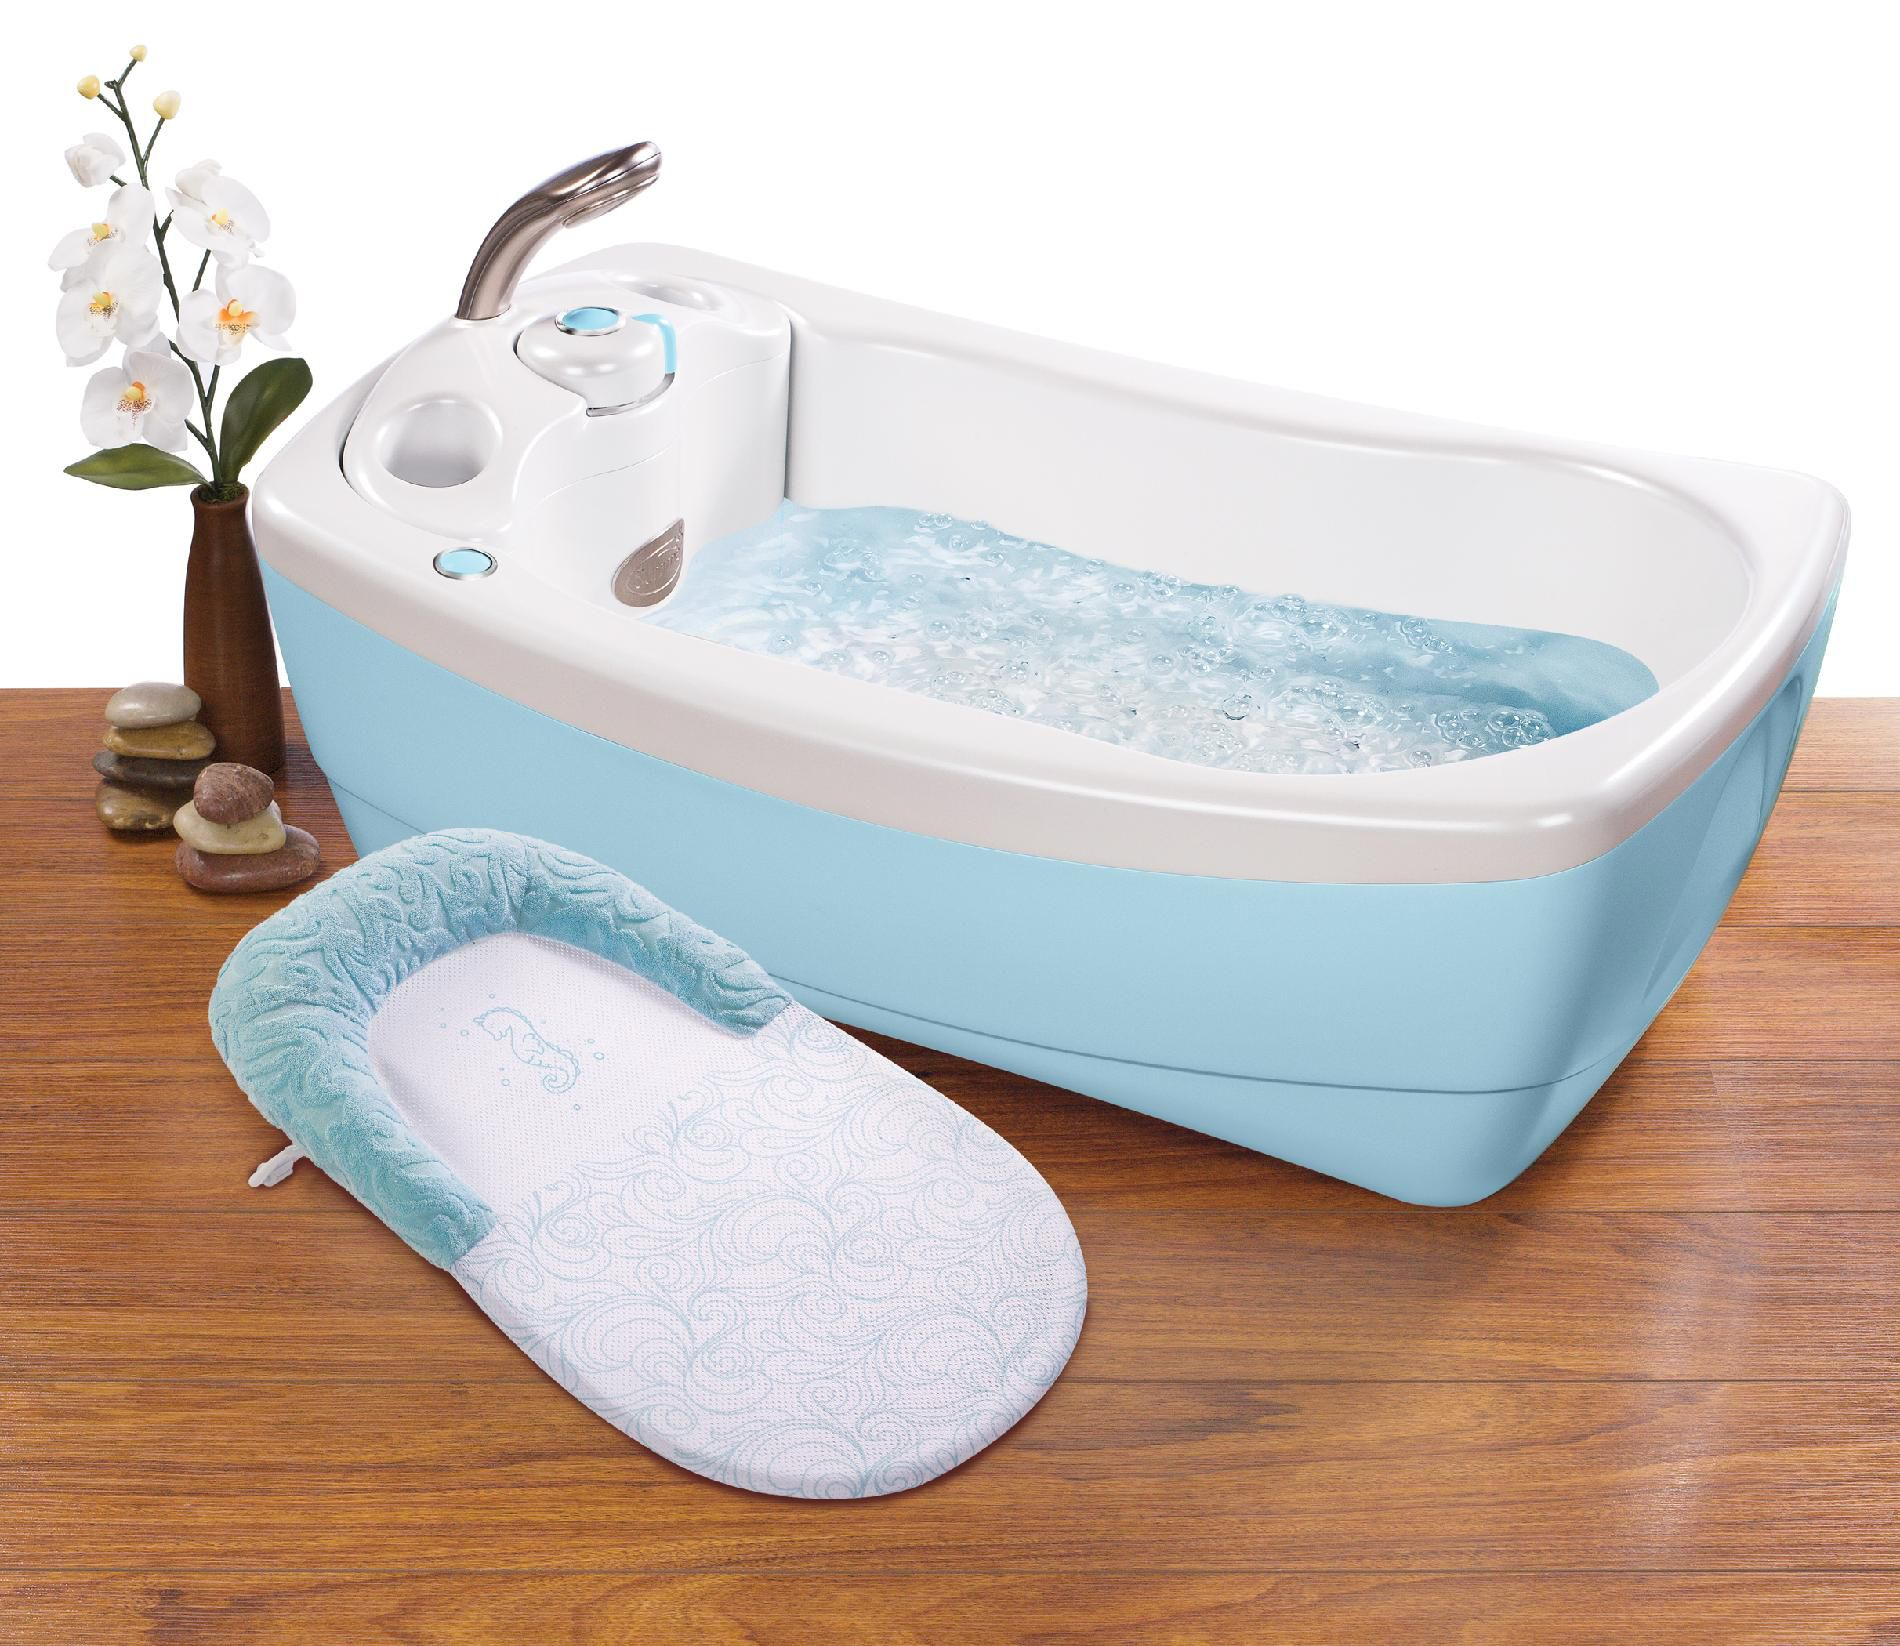 Summer Infant Lil' Luxuries Whirlpool Bubbling Spa & Shower